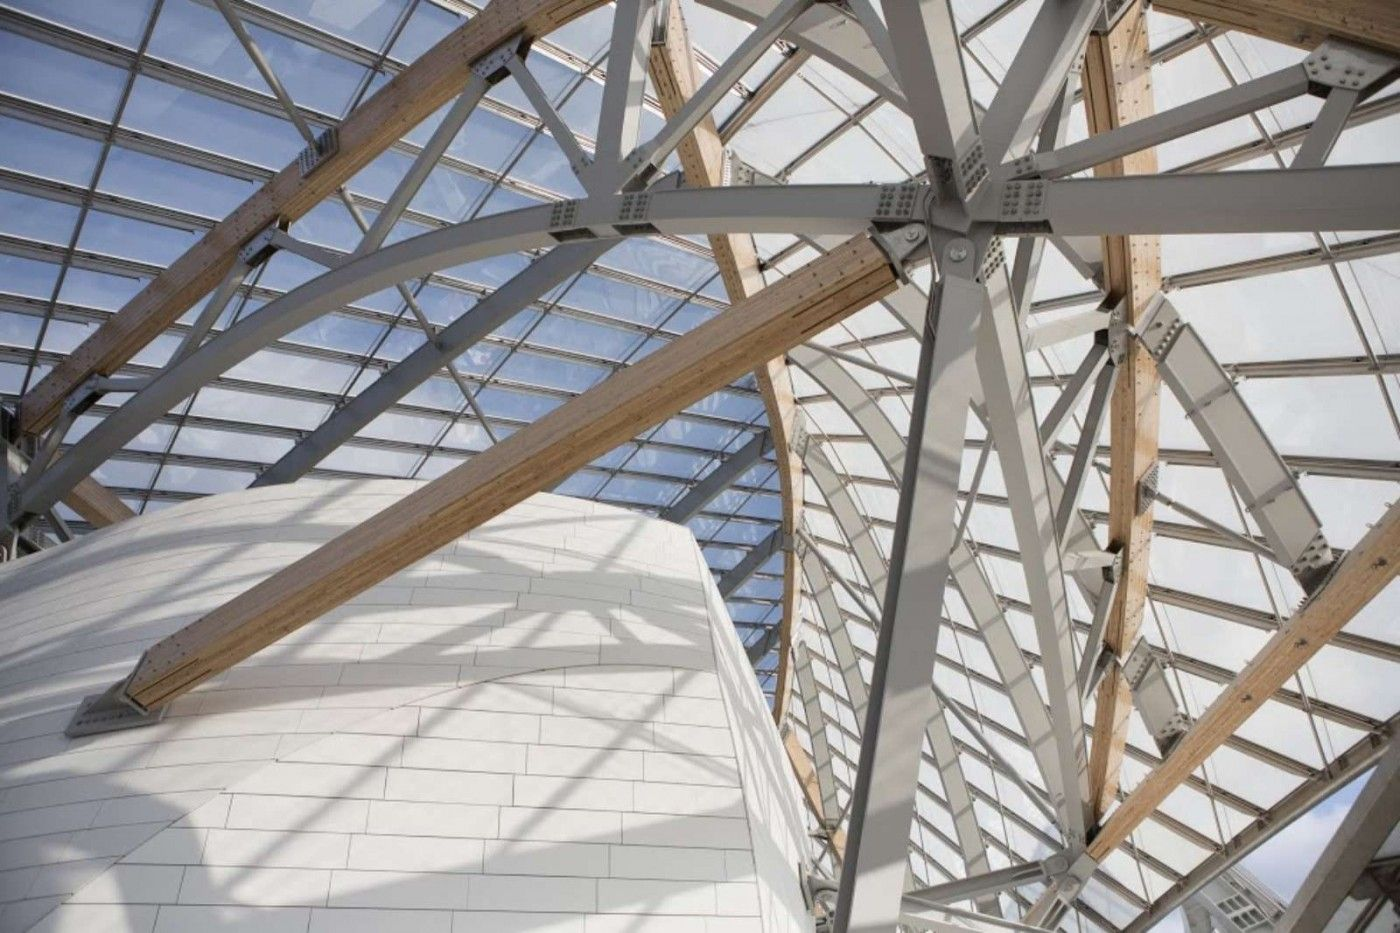 Foundation Louis Vuitton by Frank Gehry in Paris, France